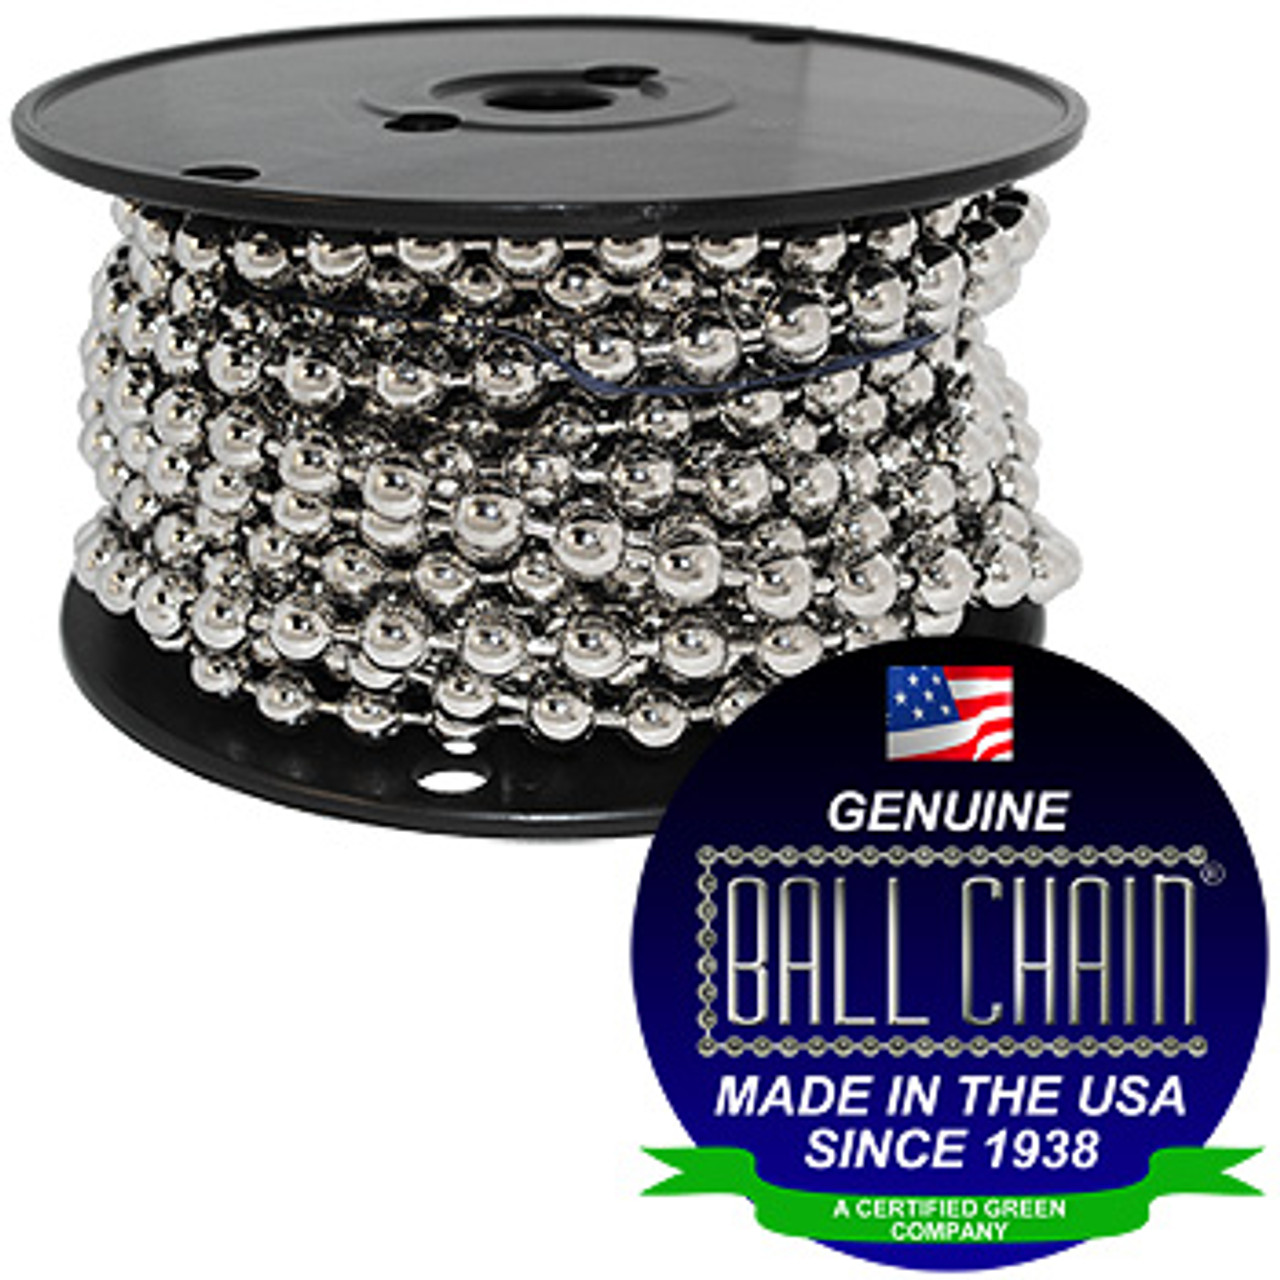 #30 Nickel Plated Steel Ball Chain Spool